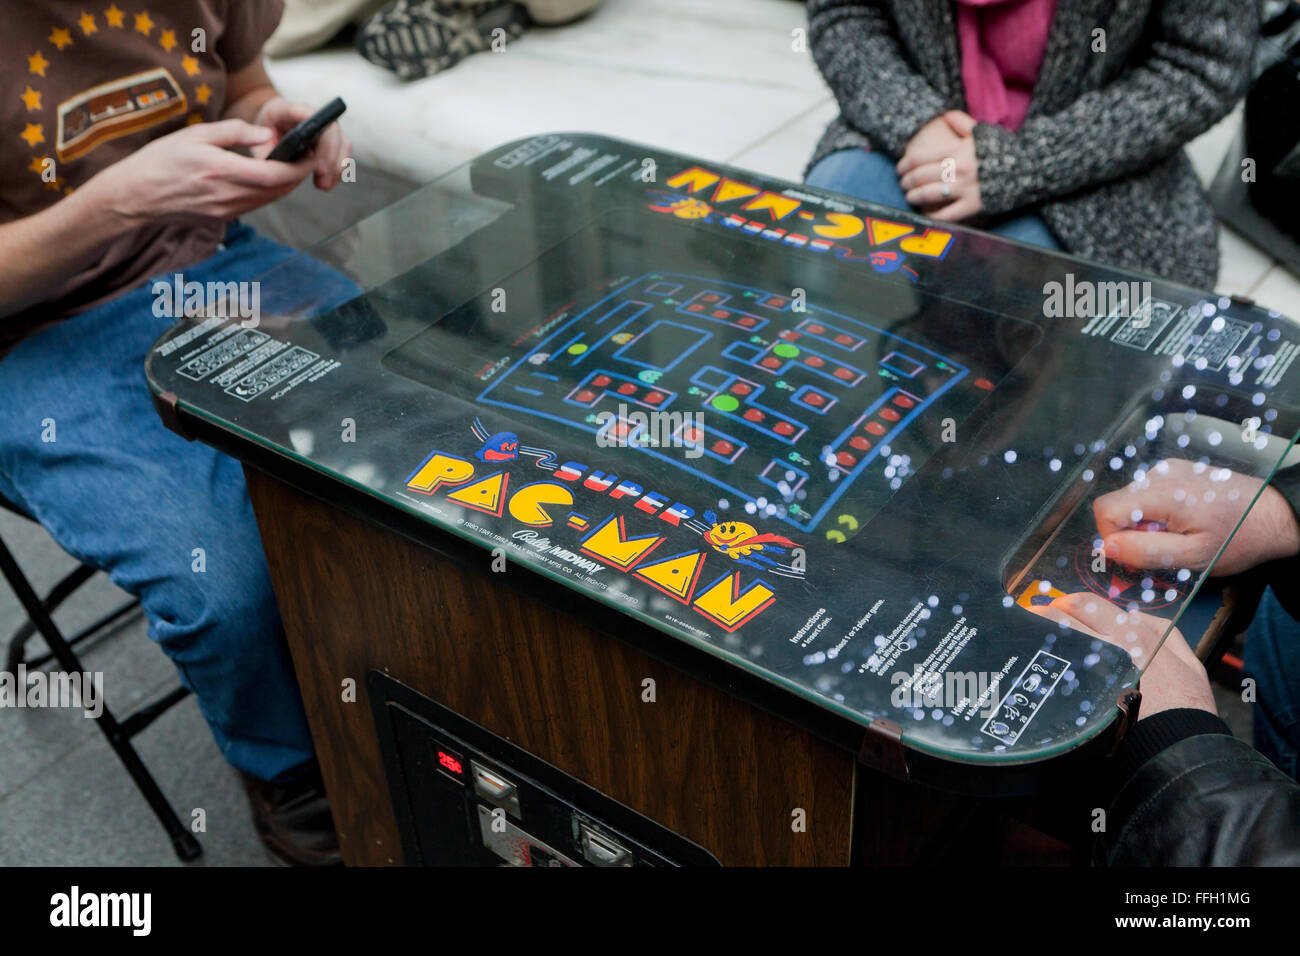 People playing a vintage Pac-Man video arcade game - USA - Stock Image